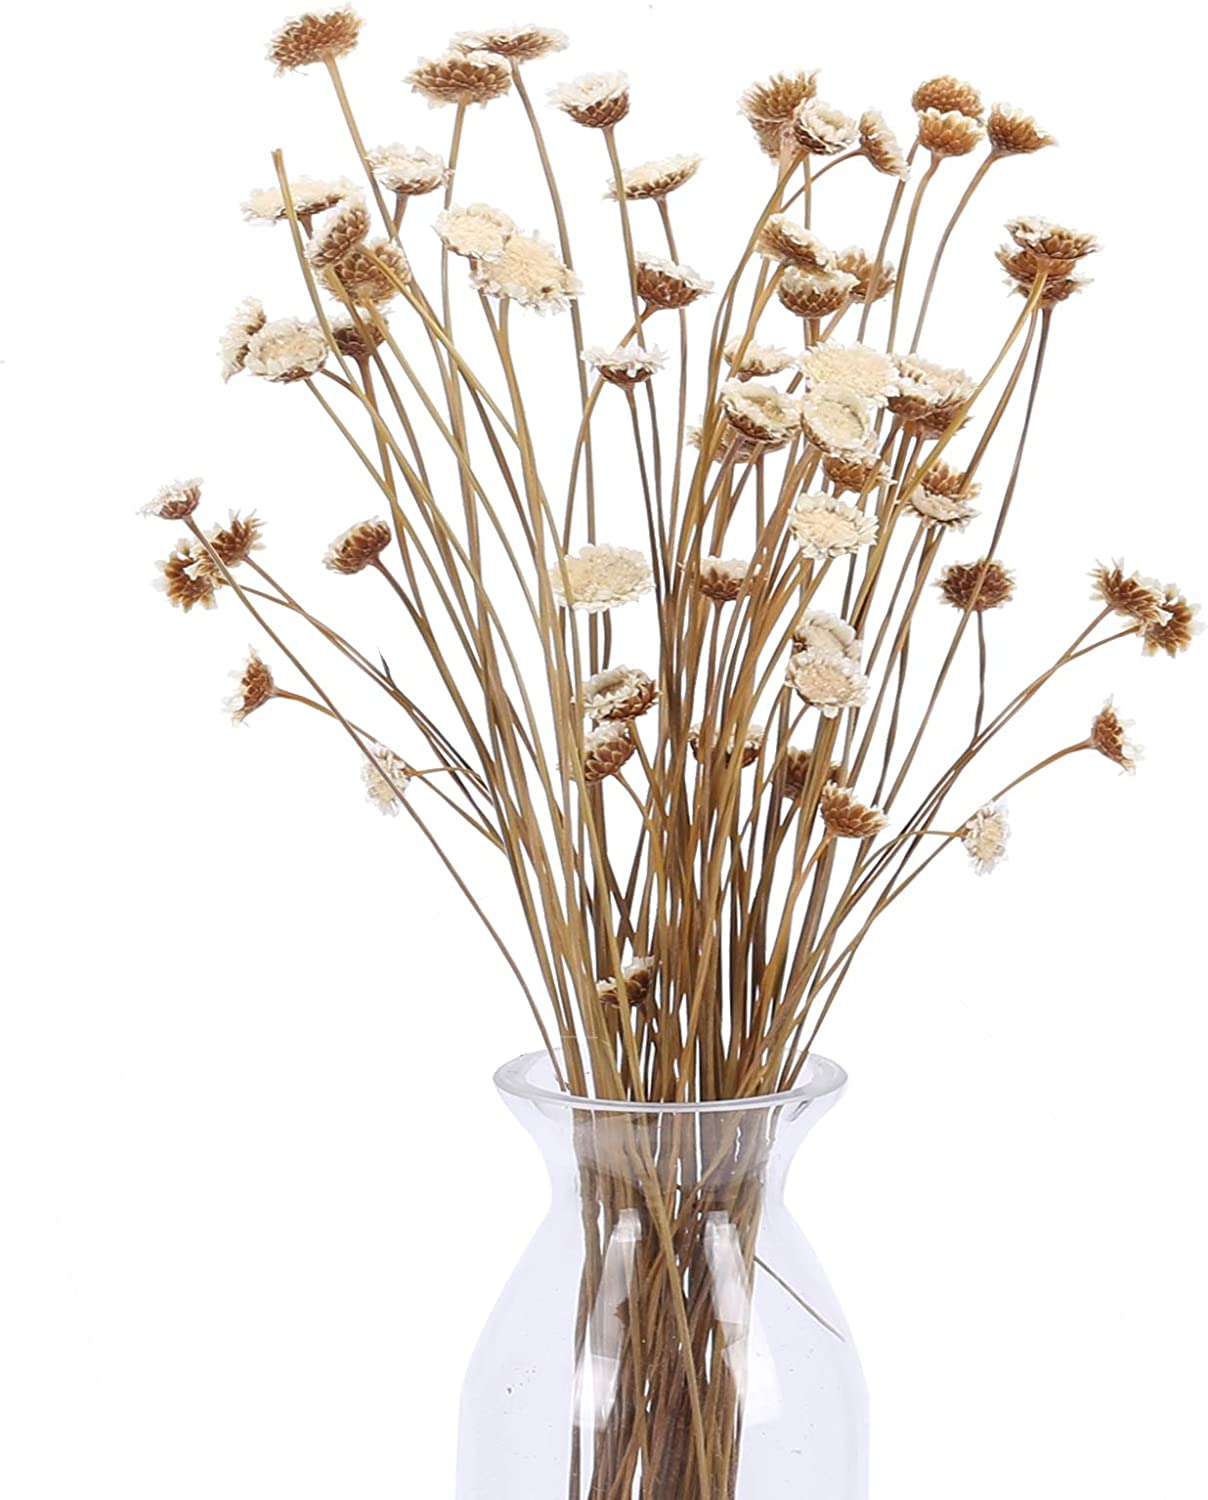 XHXSTORE 60Pcs Dried Flowers Natural Dried Flowers Bouquet Artificial White Daisy Bouquet Fake Floral Arrangements for Wedding Home Office Party Hotel Restaurant Winter Decoration White